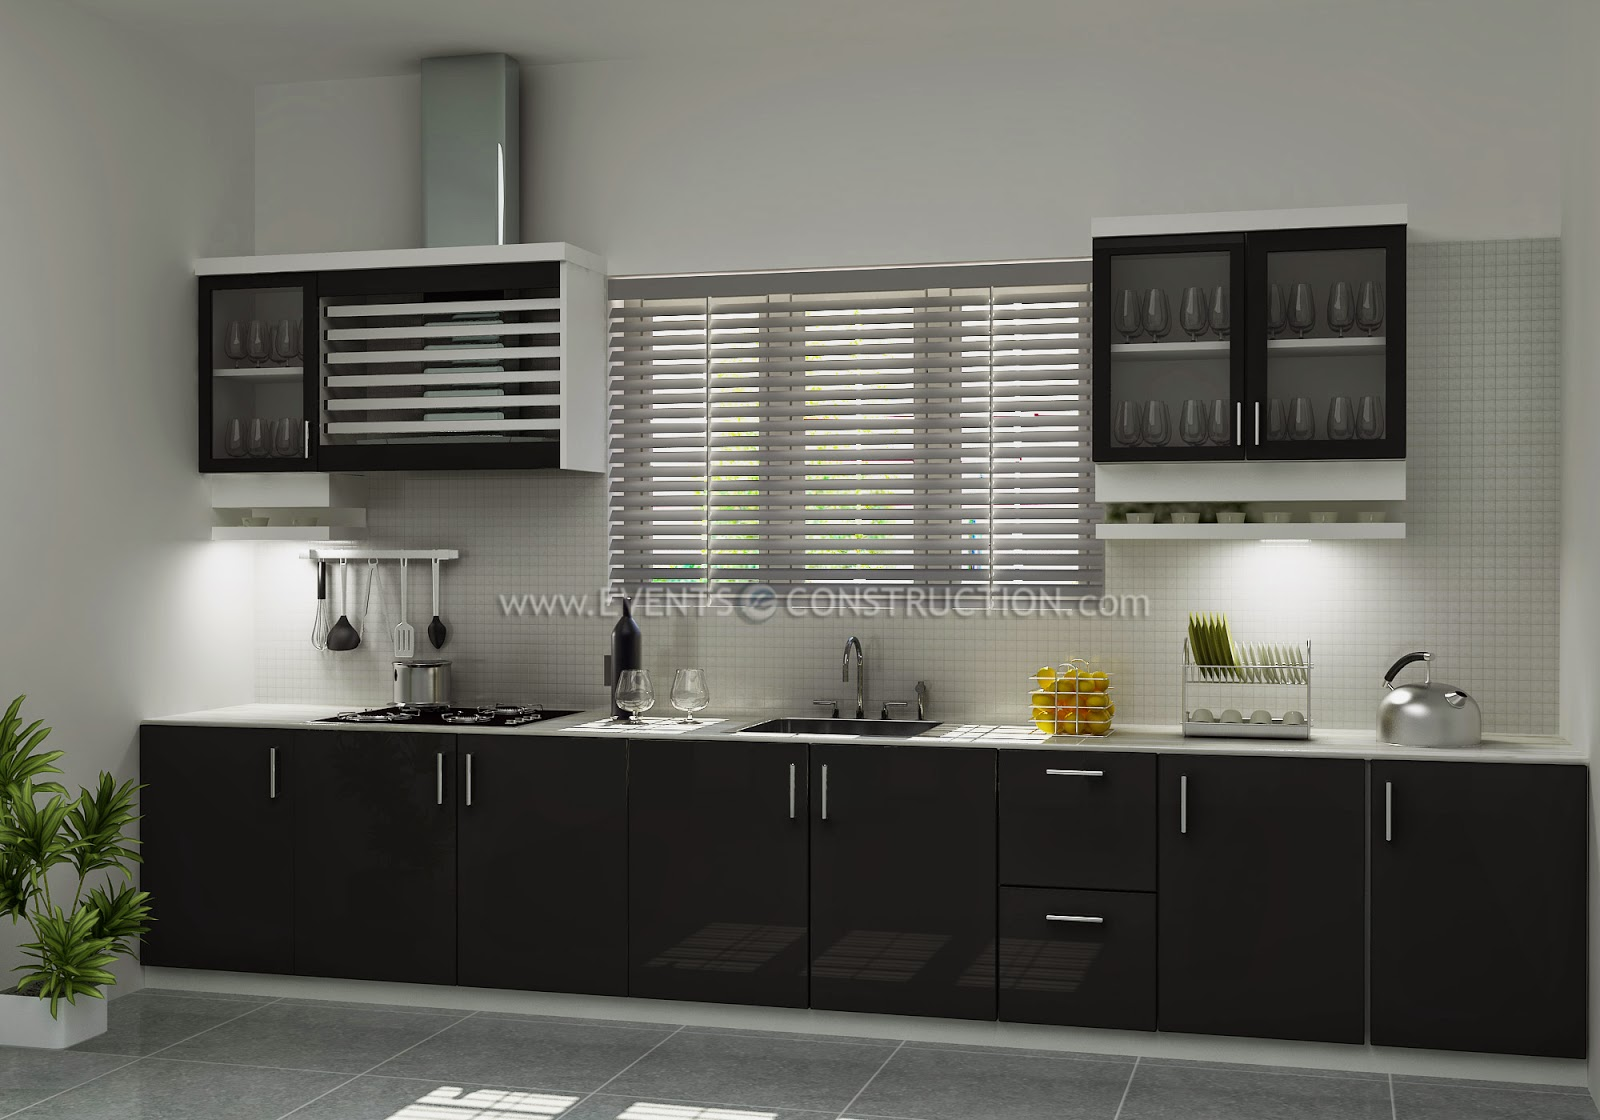 Evens construction pvt ltd simple and small kerala for Interior design for kitchen in kerala